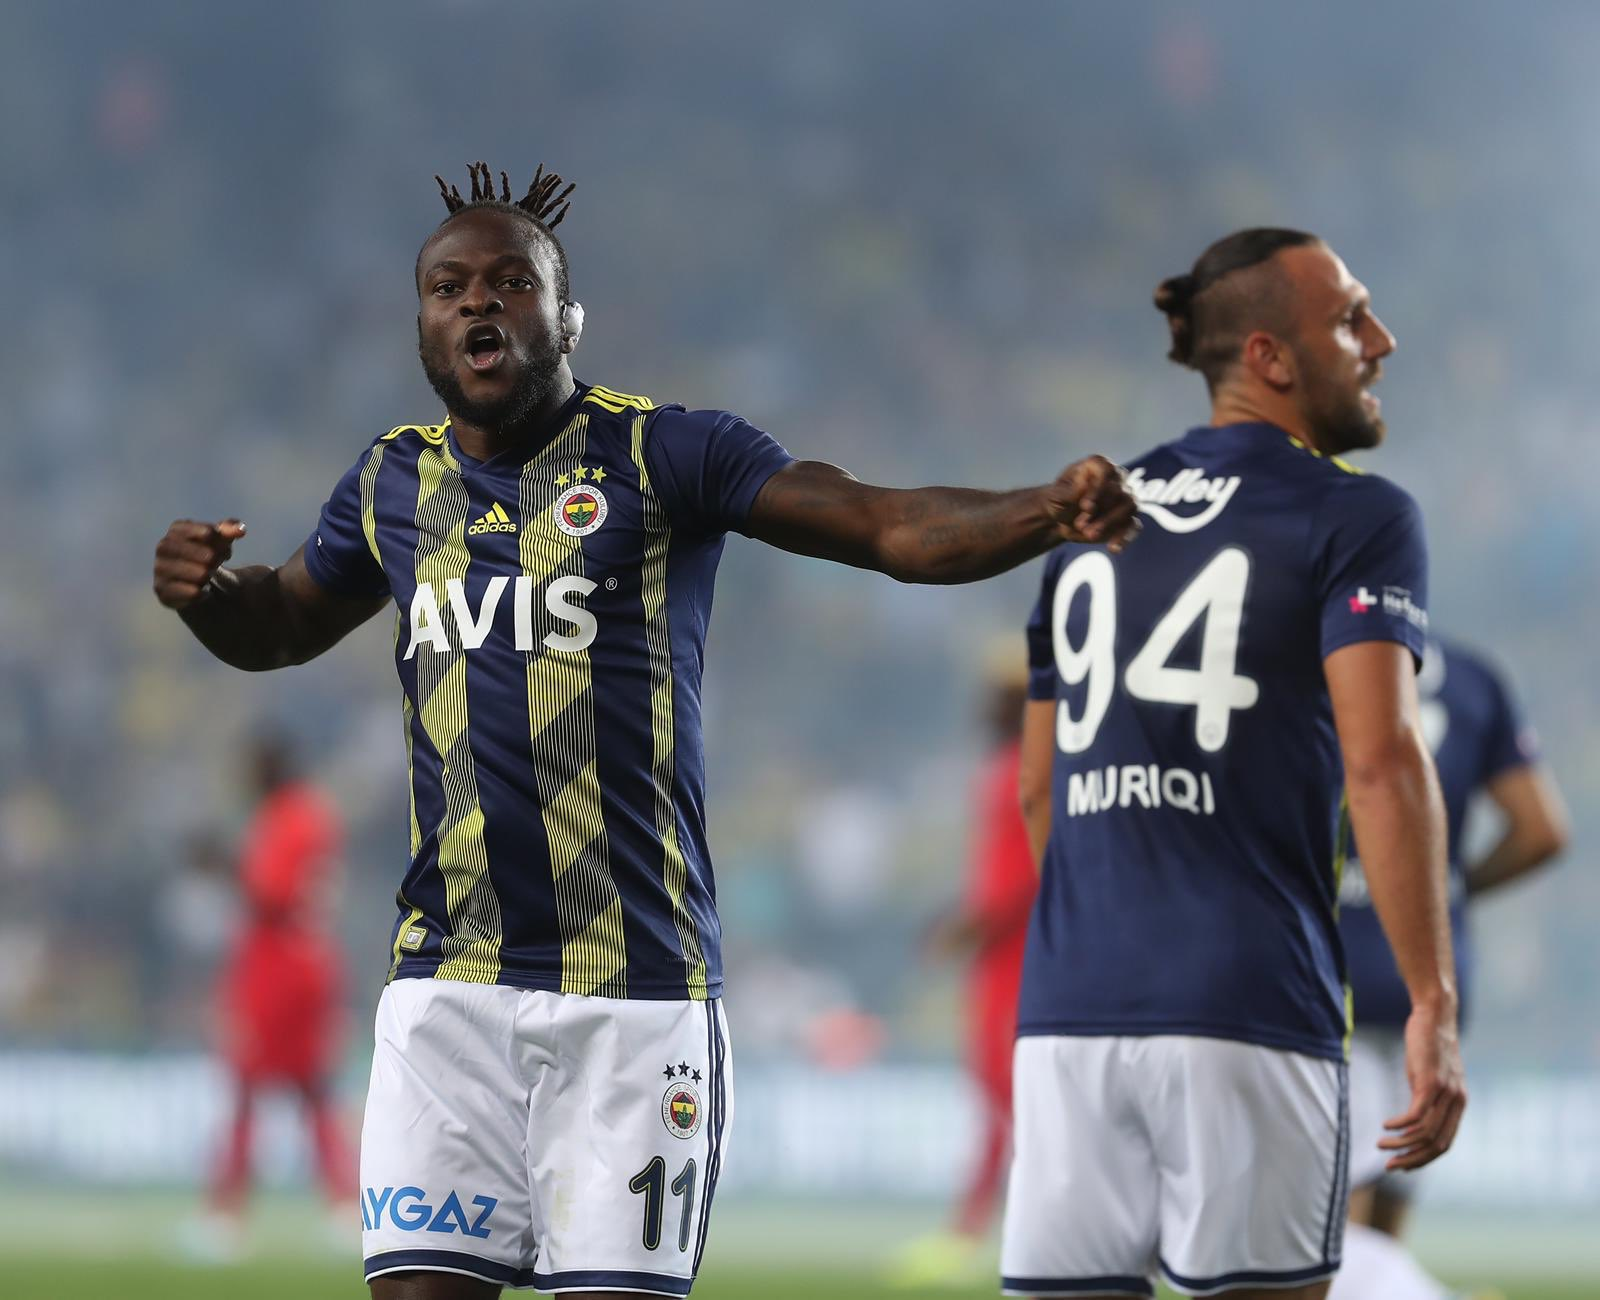 Moses Hails Fenerbahce's 'Unbelievable Performance' In Win Vs Gaziantep